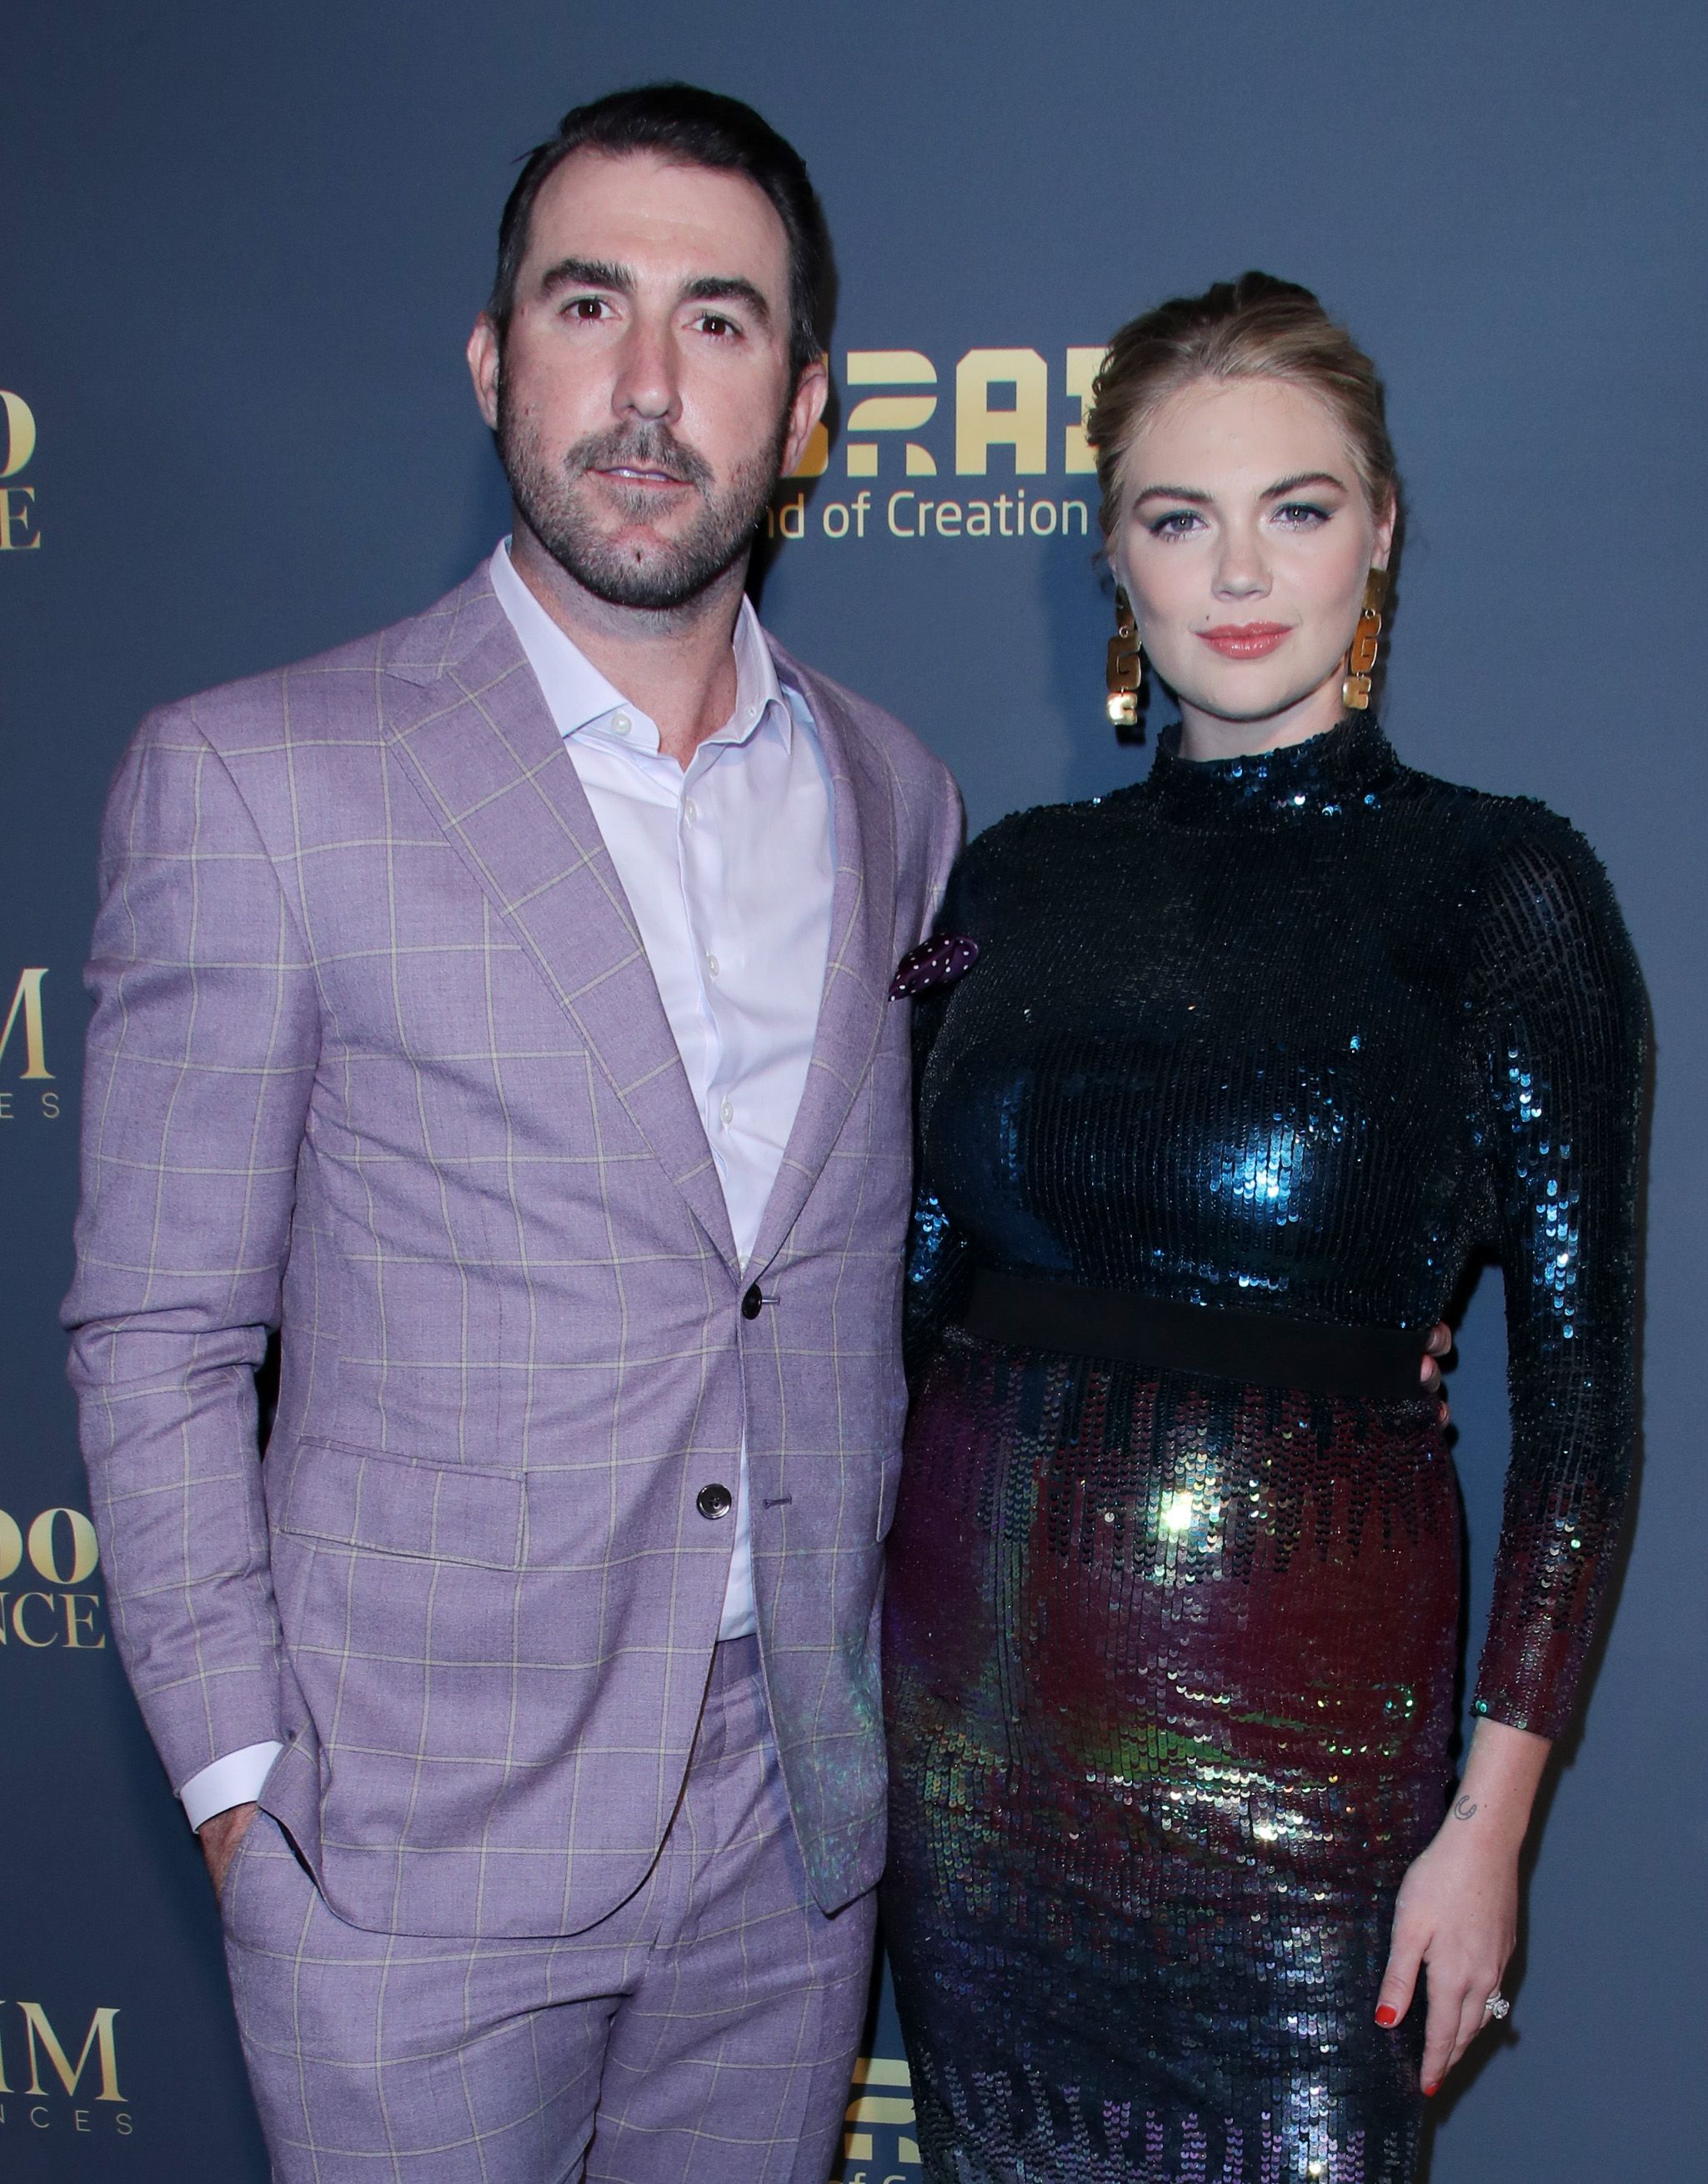 Justin Verlander and Kate Upton attend the Maxim Hot 100 Experience event in Los Angeles on July 21, 2018.